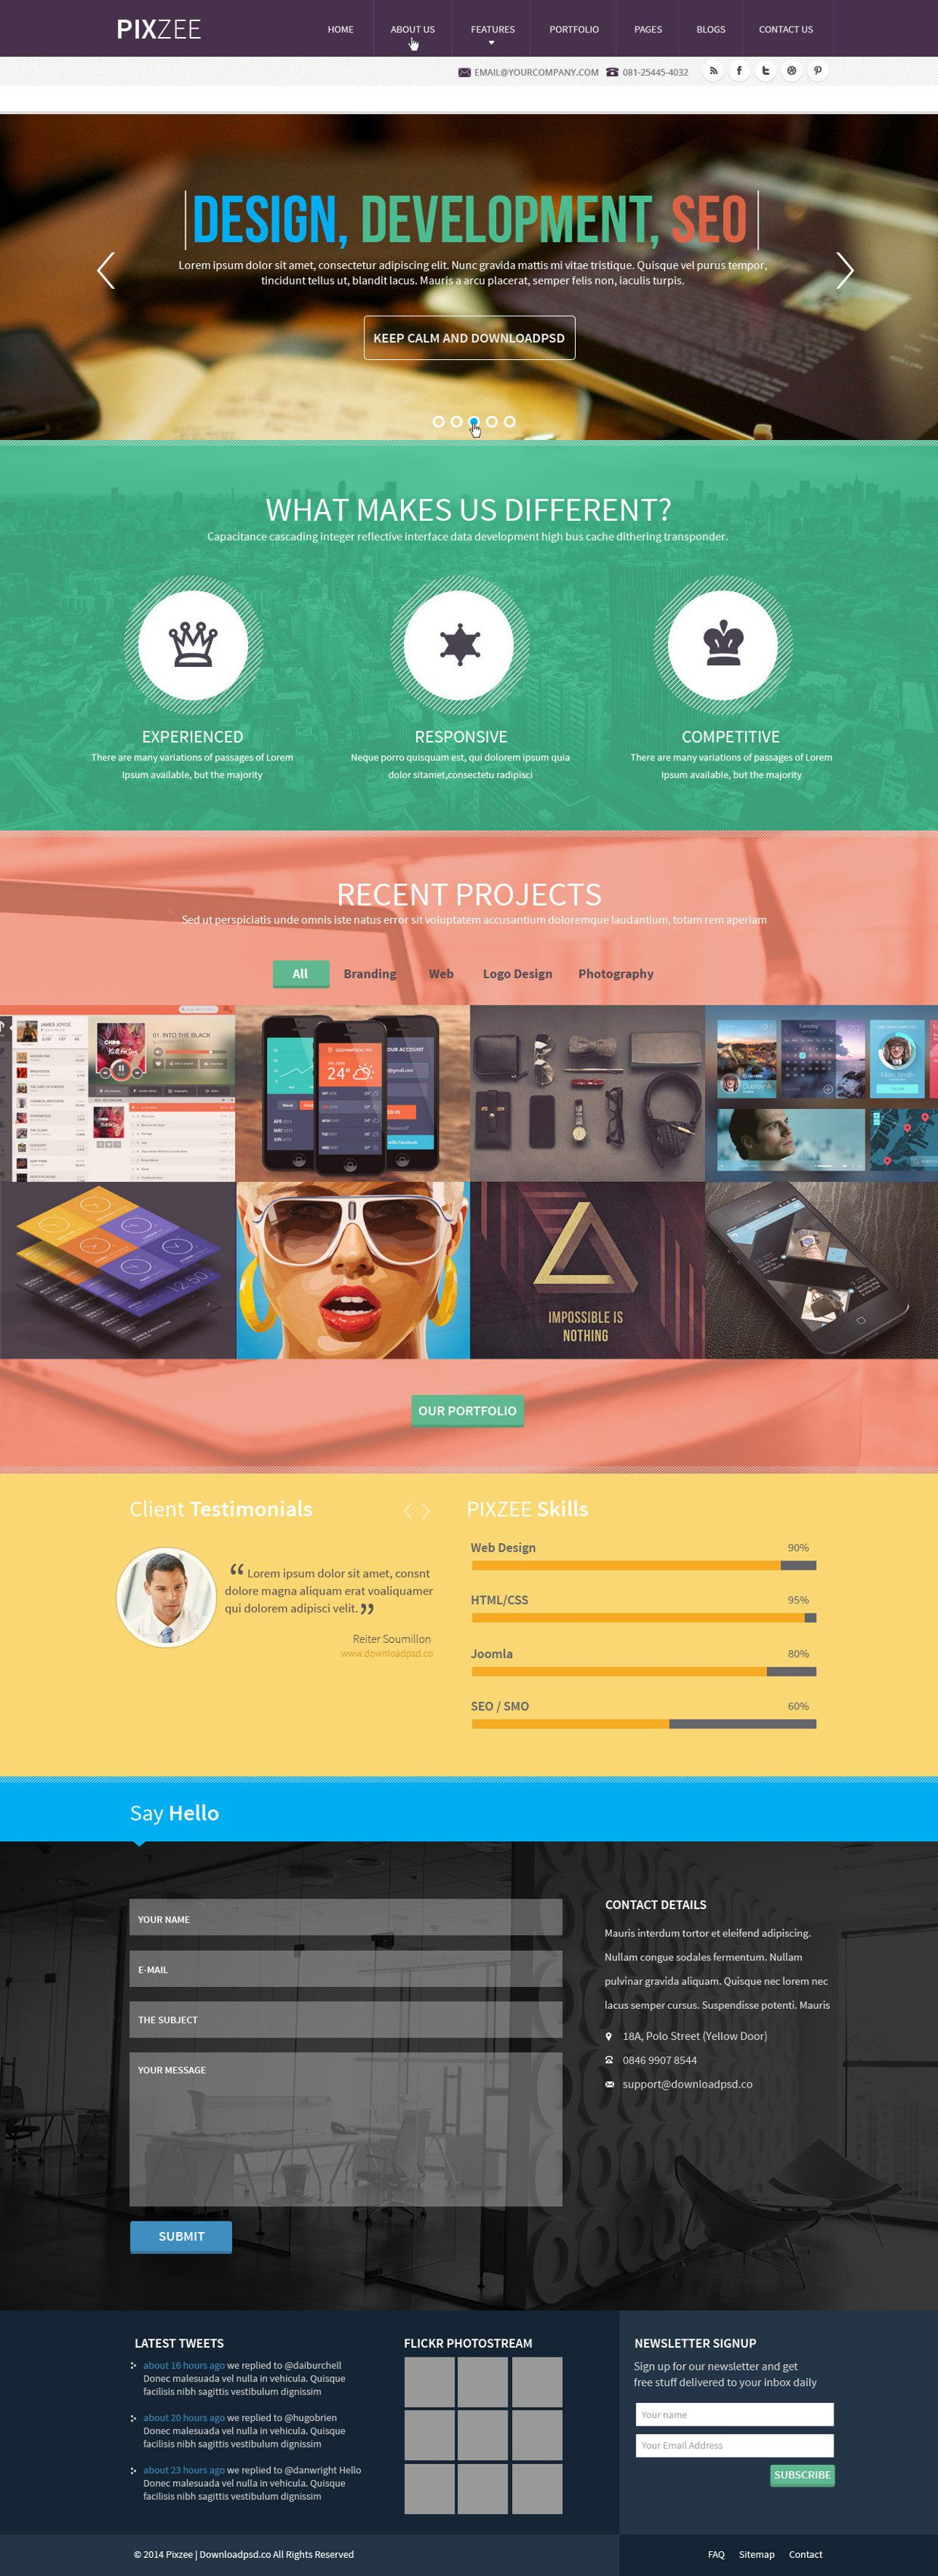 009 Magnificent One Page Website Template Psd Free Download Highest Clarity Full